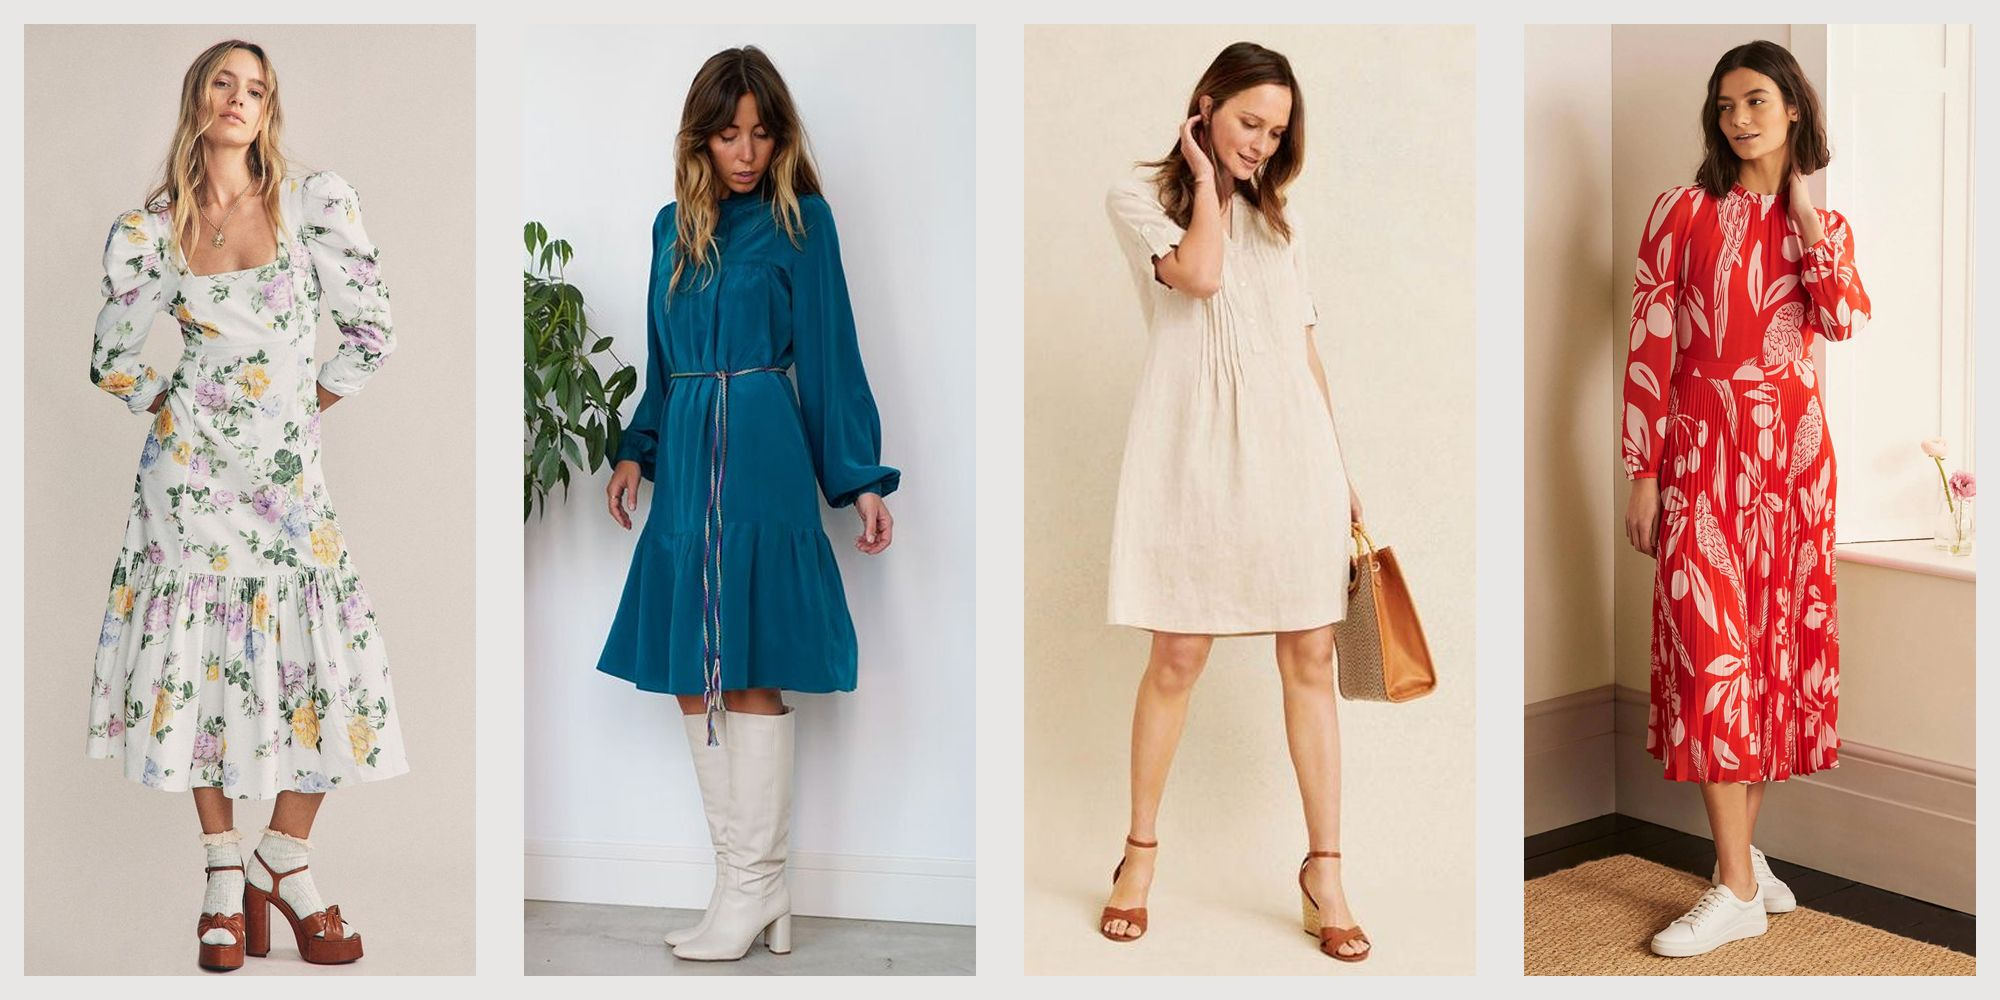 4 Cute Spring Dresses 4 - Casual and Chic Dresses to Wear in